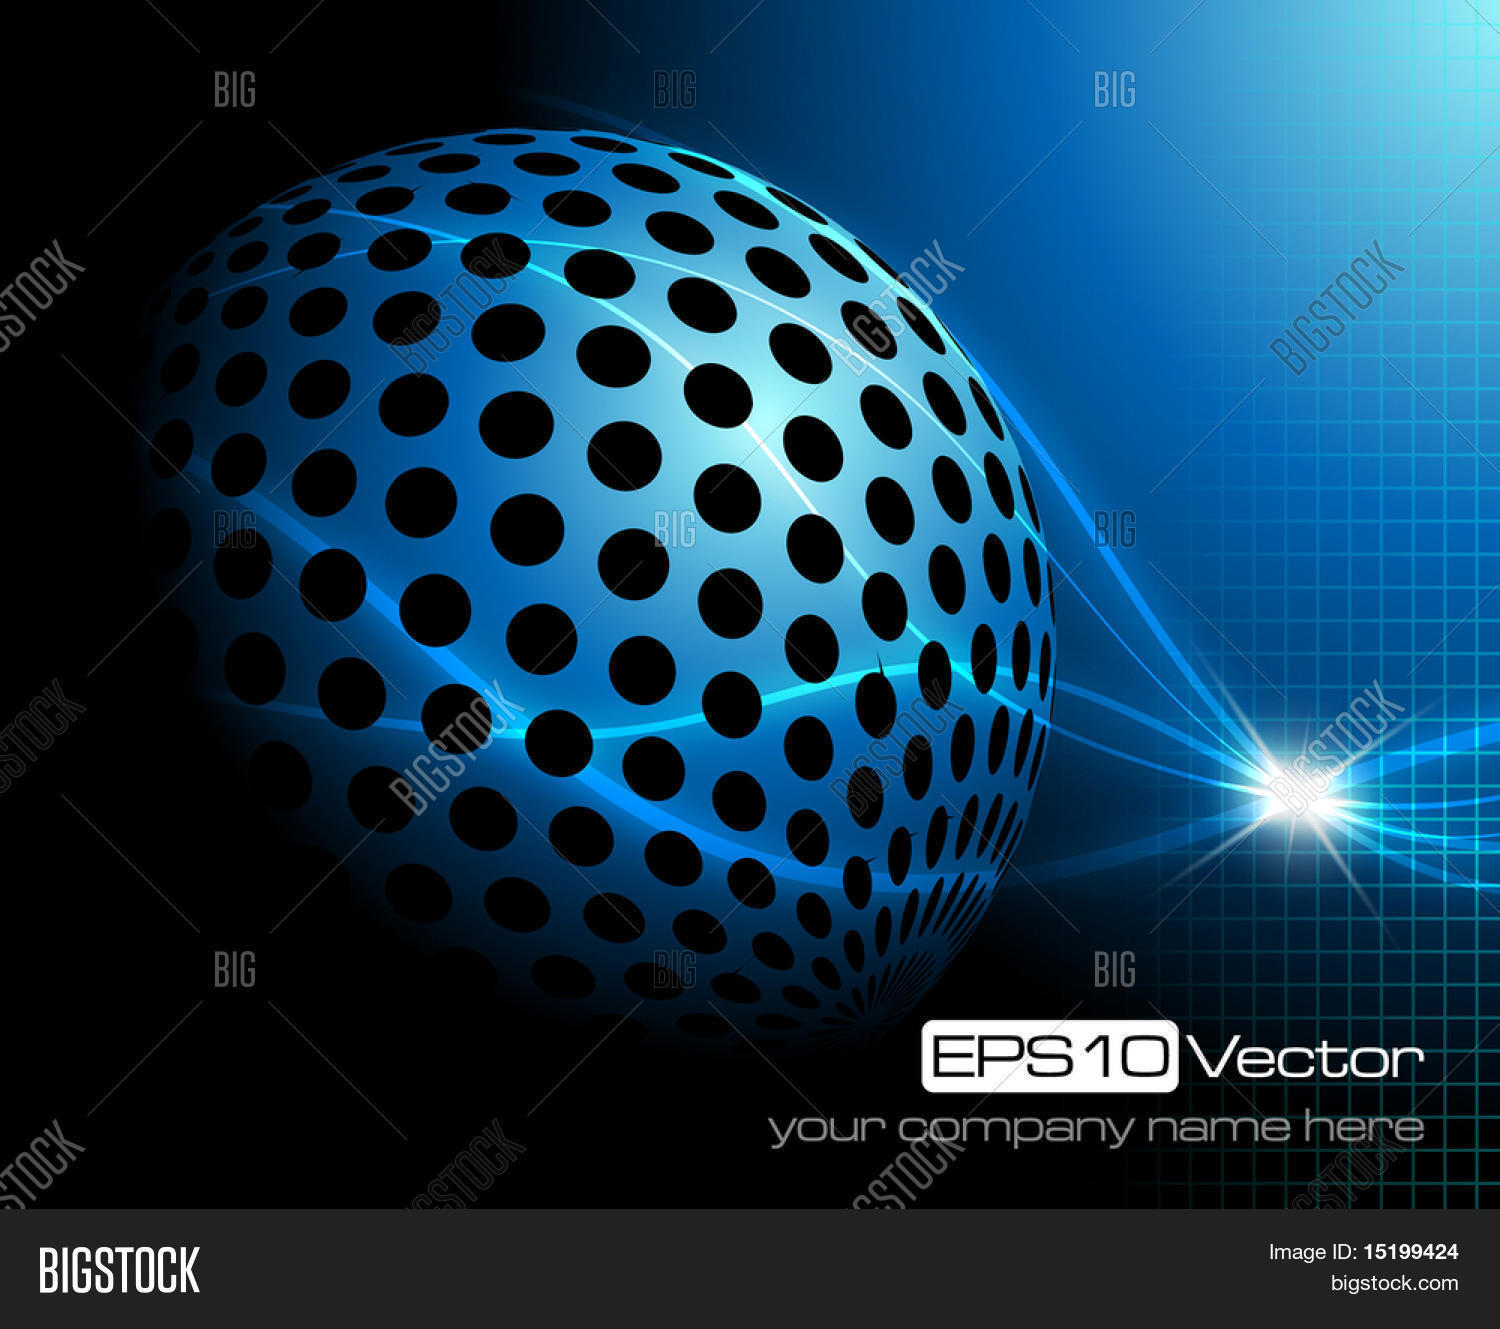 3d,abstract,art,backdrop,background,blue,bright,company,computer,cover,curves,design,drawing,electric,elegant,energy,engineering,fantasy,futuristic,gear,glitter,glossy,glow,graphic,hi-tech,illustration,light,lines,mechanical,metallic,modern,mystery,pattern,poster,precision,report,shiny,smooth,sphere,stylish,surface,technology abstract,template,texture,transparent,vector,wallpaper,waves,web,white